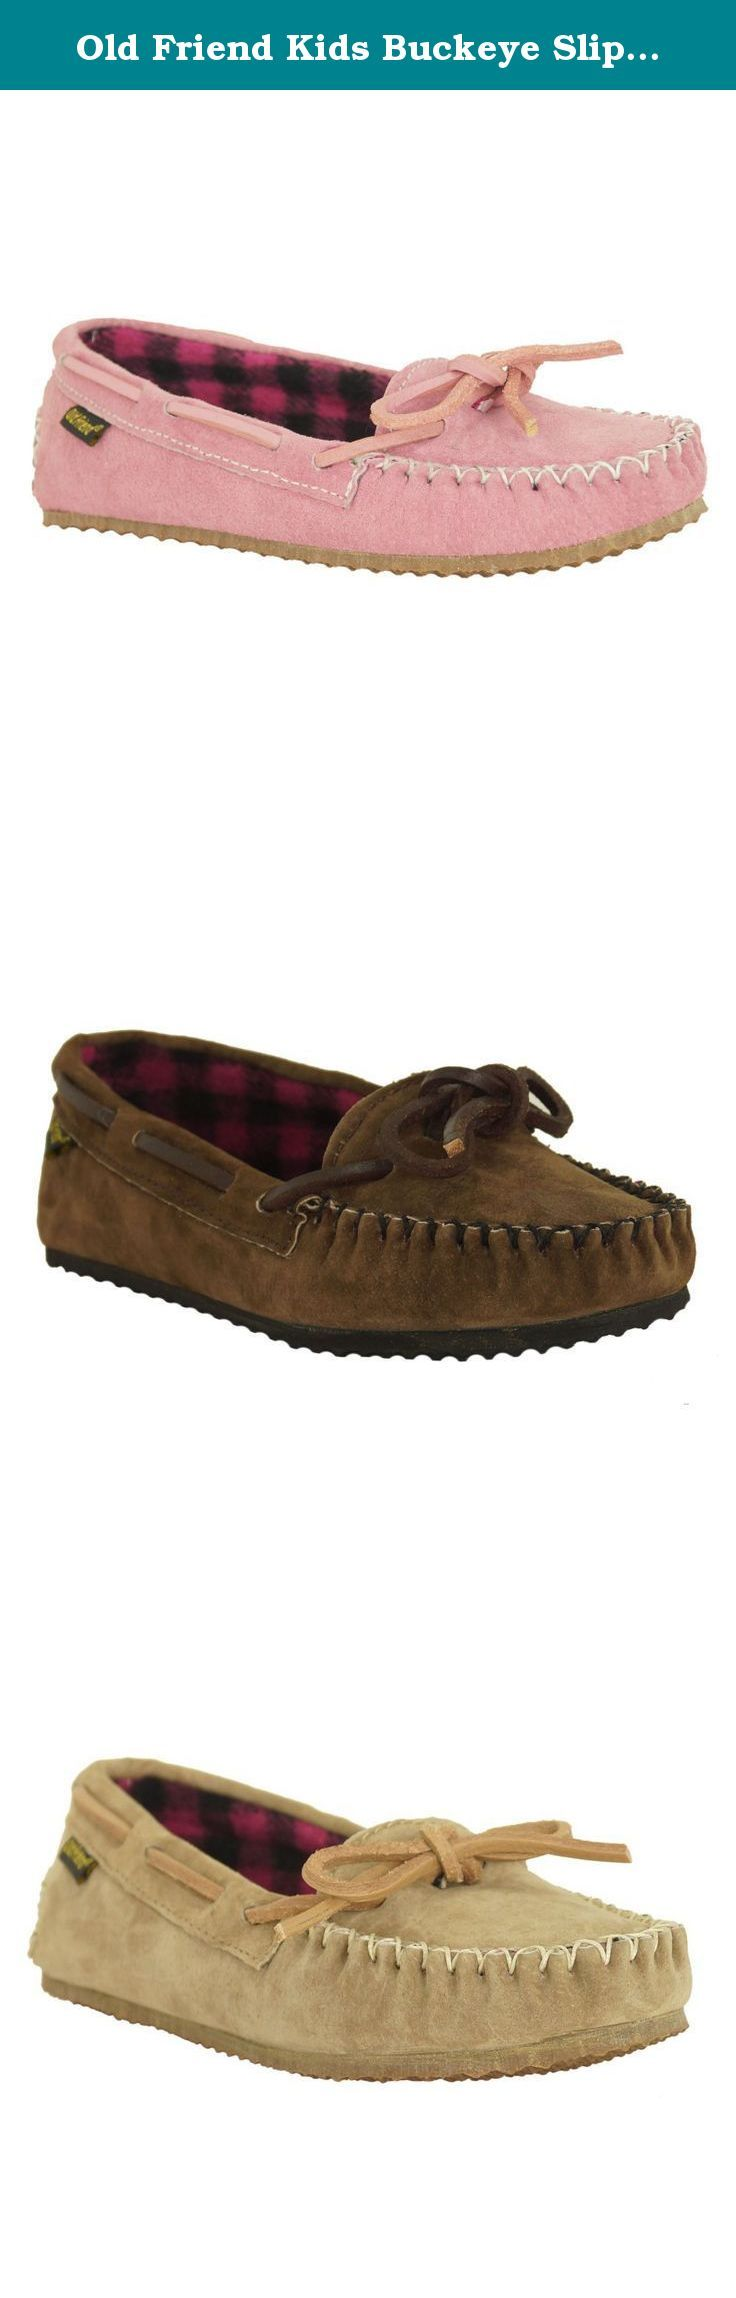 Old Friend Kids Buckeye Slippers. Little feet step out in style in the Old Friend Kids Buckeye Slippers. These comfortable plaid-lined loafers come in stylish pink and black, and feature a long-lasting leather upper and TPR rubber sole. Kids sizes only. About Old Friend Slippers Since 1981, Old Friend Slippers has developed a line of slippers unmatched by competitors. Their process produces an almost silk-like feel to their sheepskin. They've removed all textile bindings in favor of…